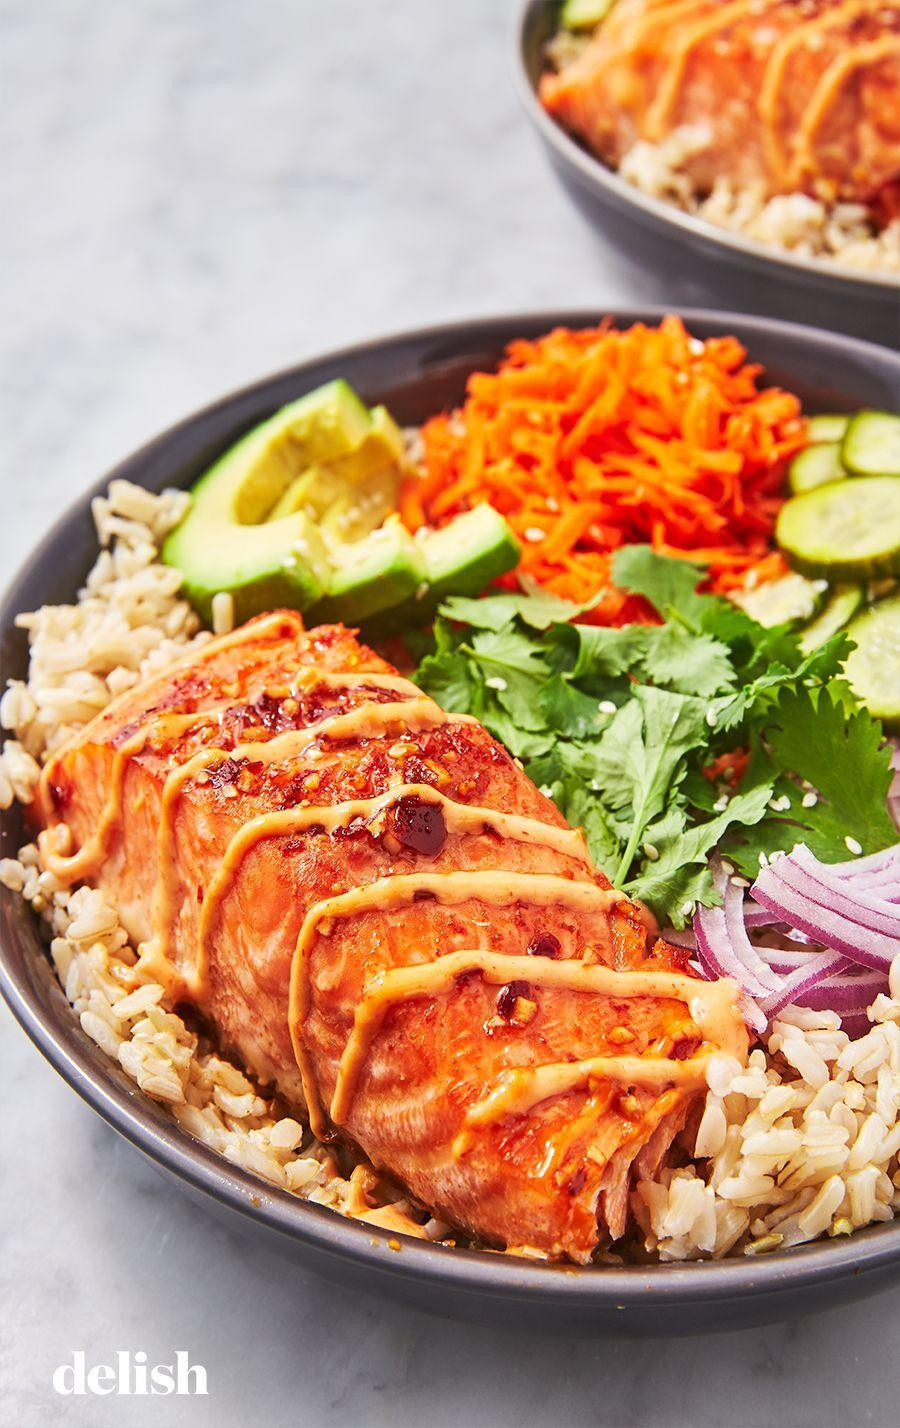 "<p>Skip the take-out sushi and make this instead!</p><p>Get the recipe from <a href=""https://www.delish.com/cooking/recipe-ideas/a26950912/spicy-salmon-bowl-recipe/"" rel=""nofollow noopener"" target=""_blank"" data-ylk=""slk:Delish"" class=""link rapid-noclick-resp"">Delish</a>.</p>"